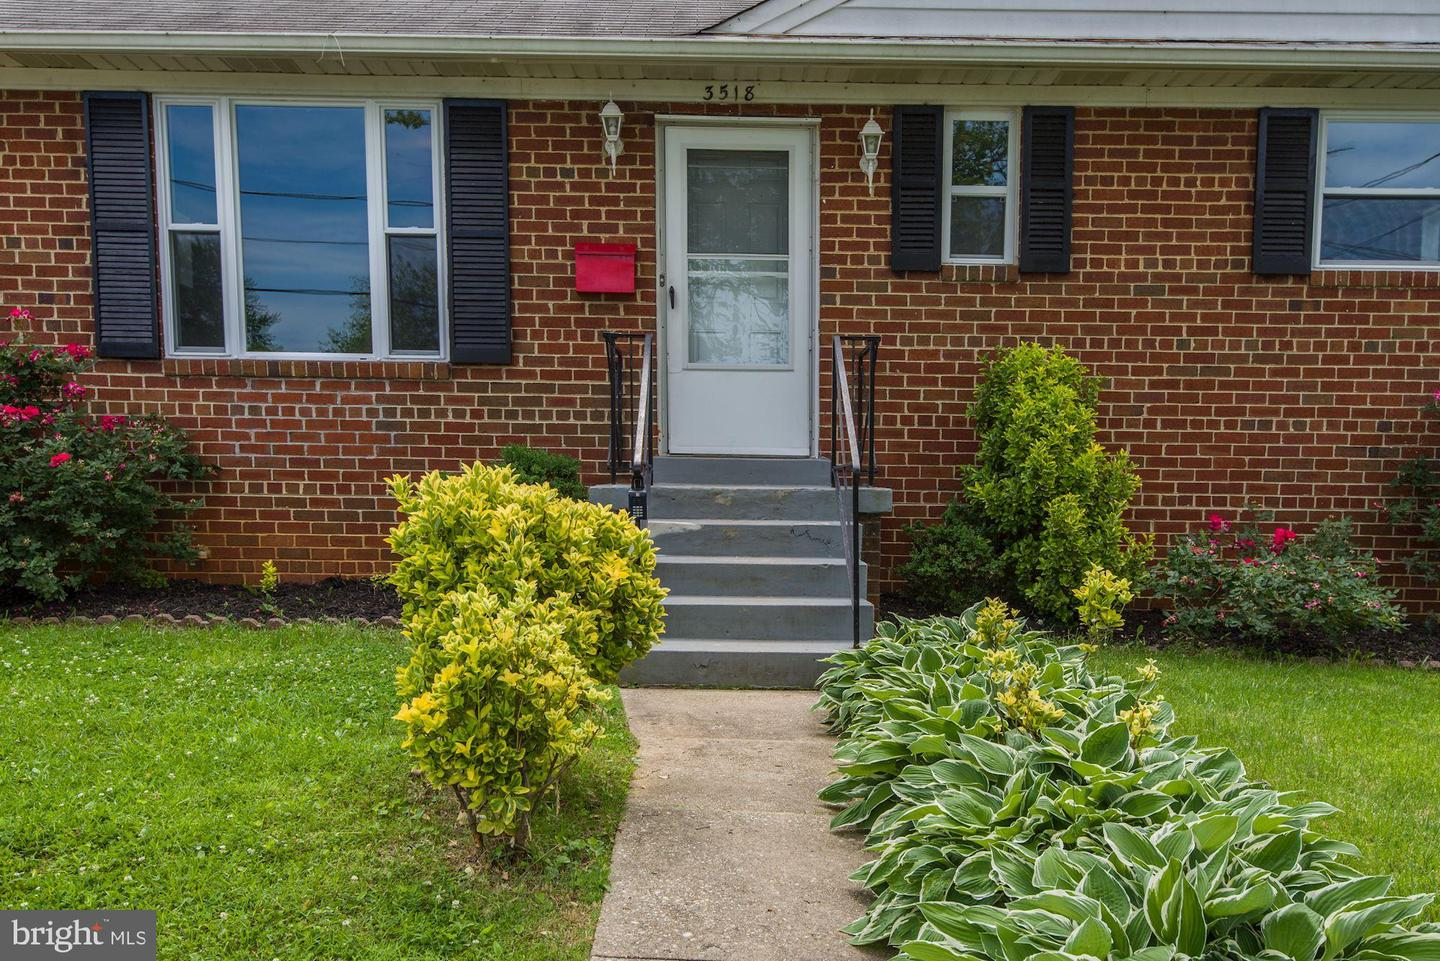 Additional photo for property listing at 3518 Hargo St Silver Spring, Maryland 20906 United States